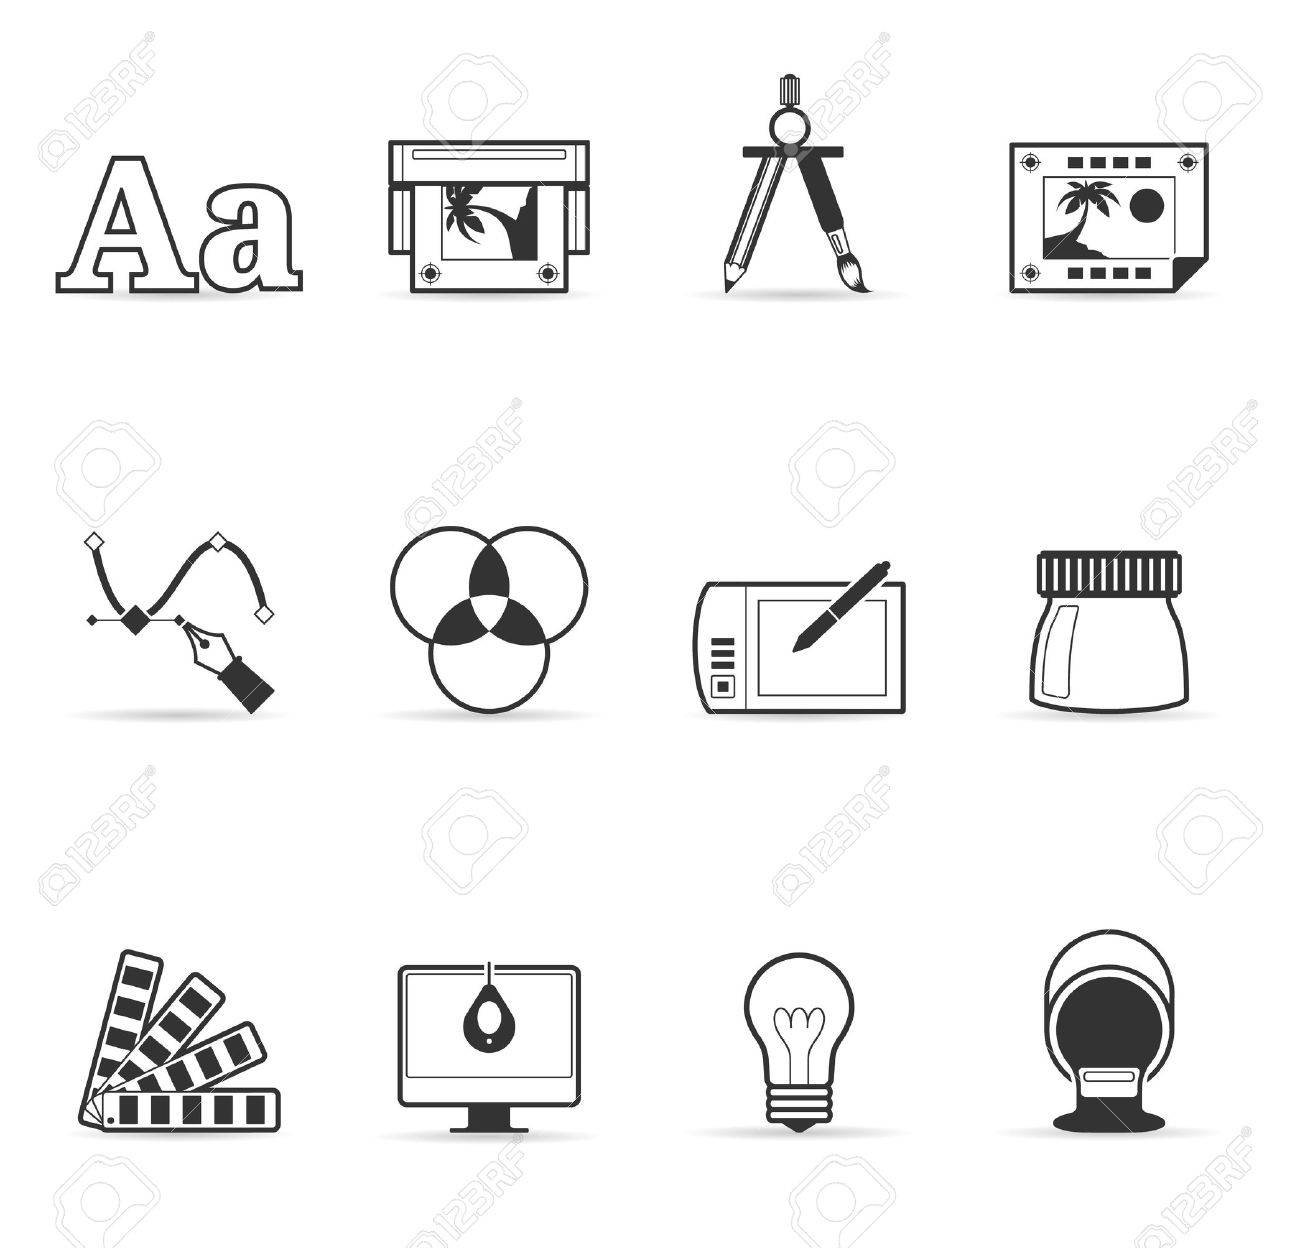 Printing   graphic design icon set in single color Stock Vector - 13650362